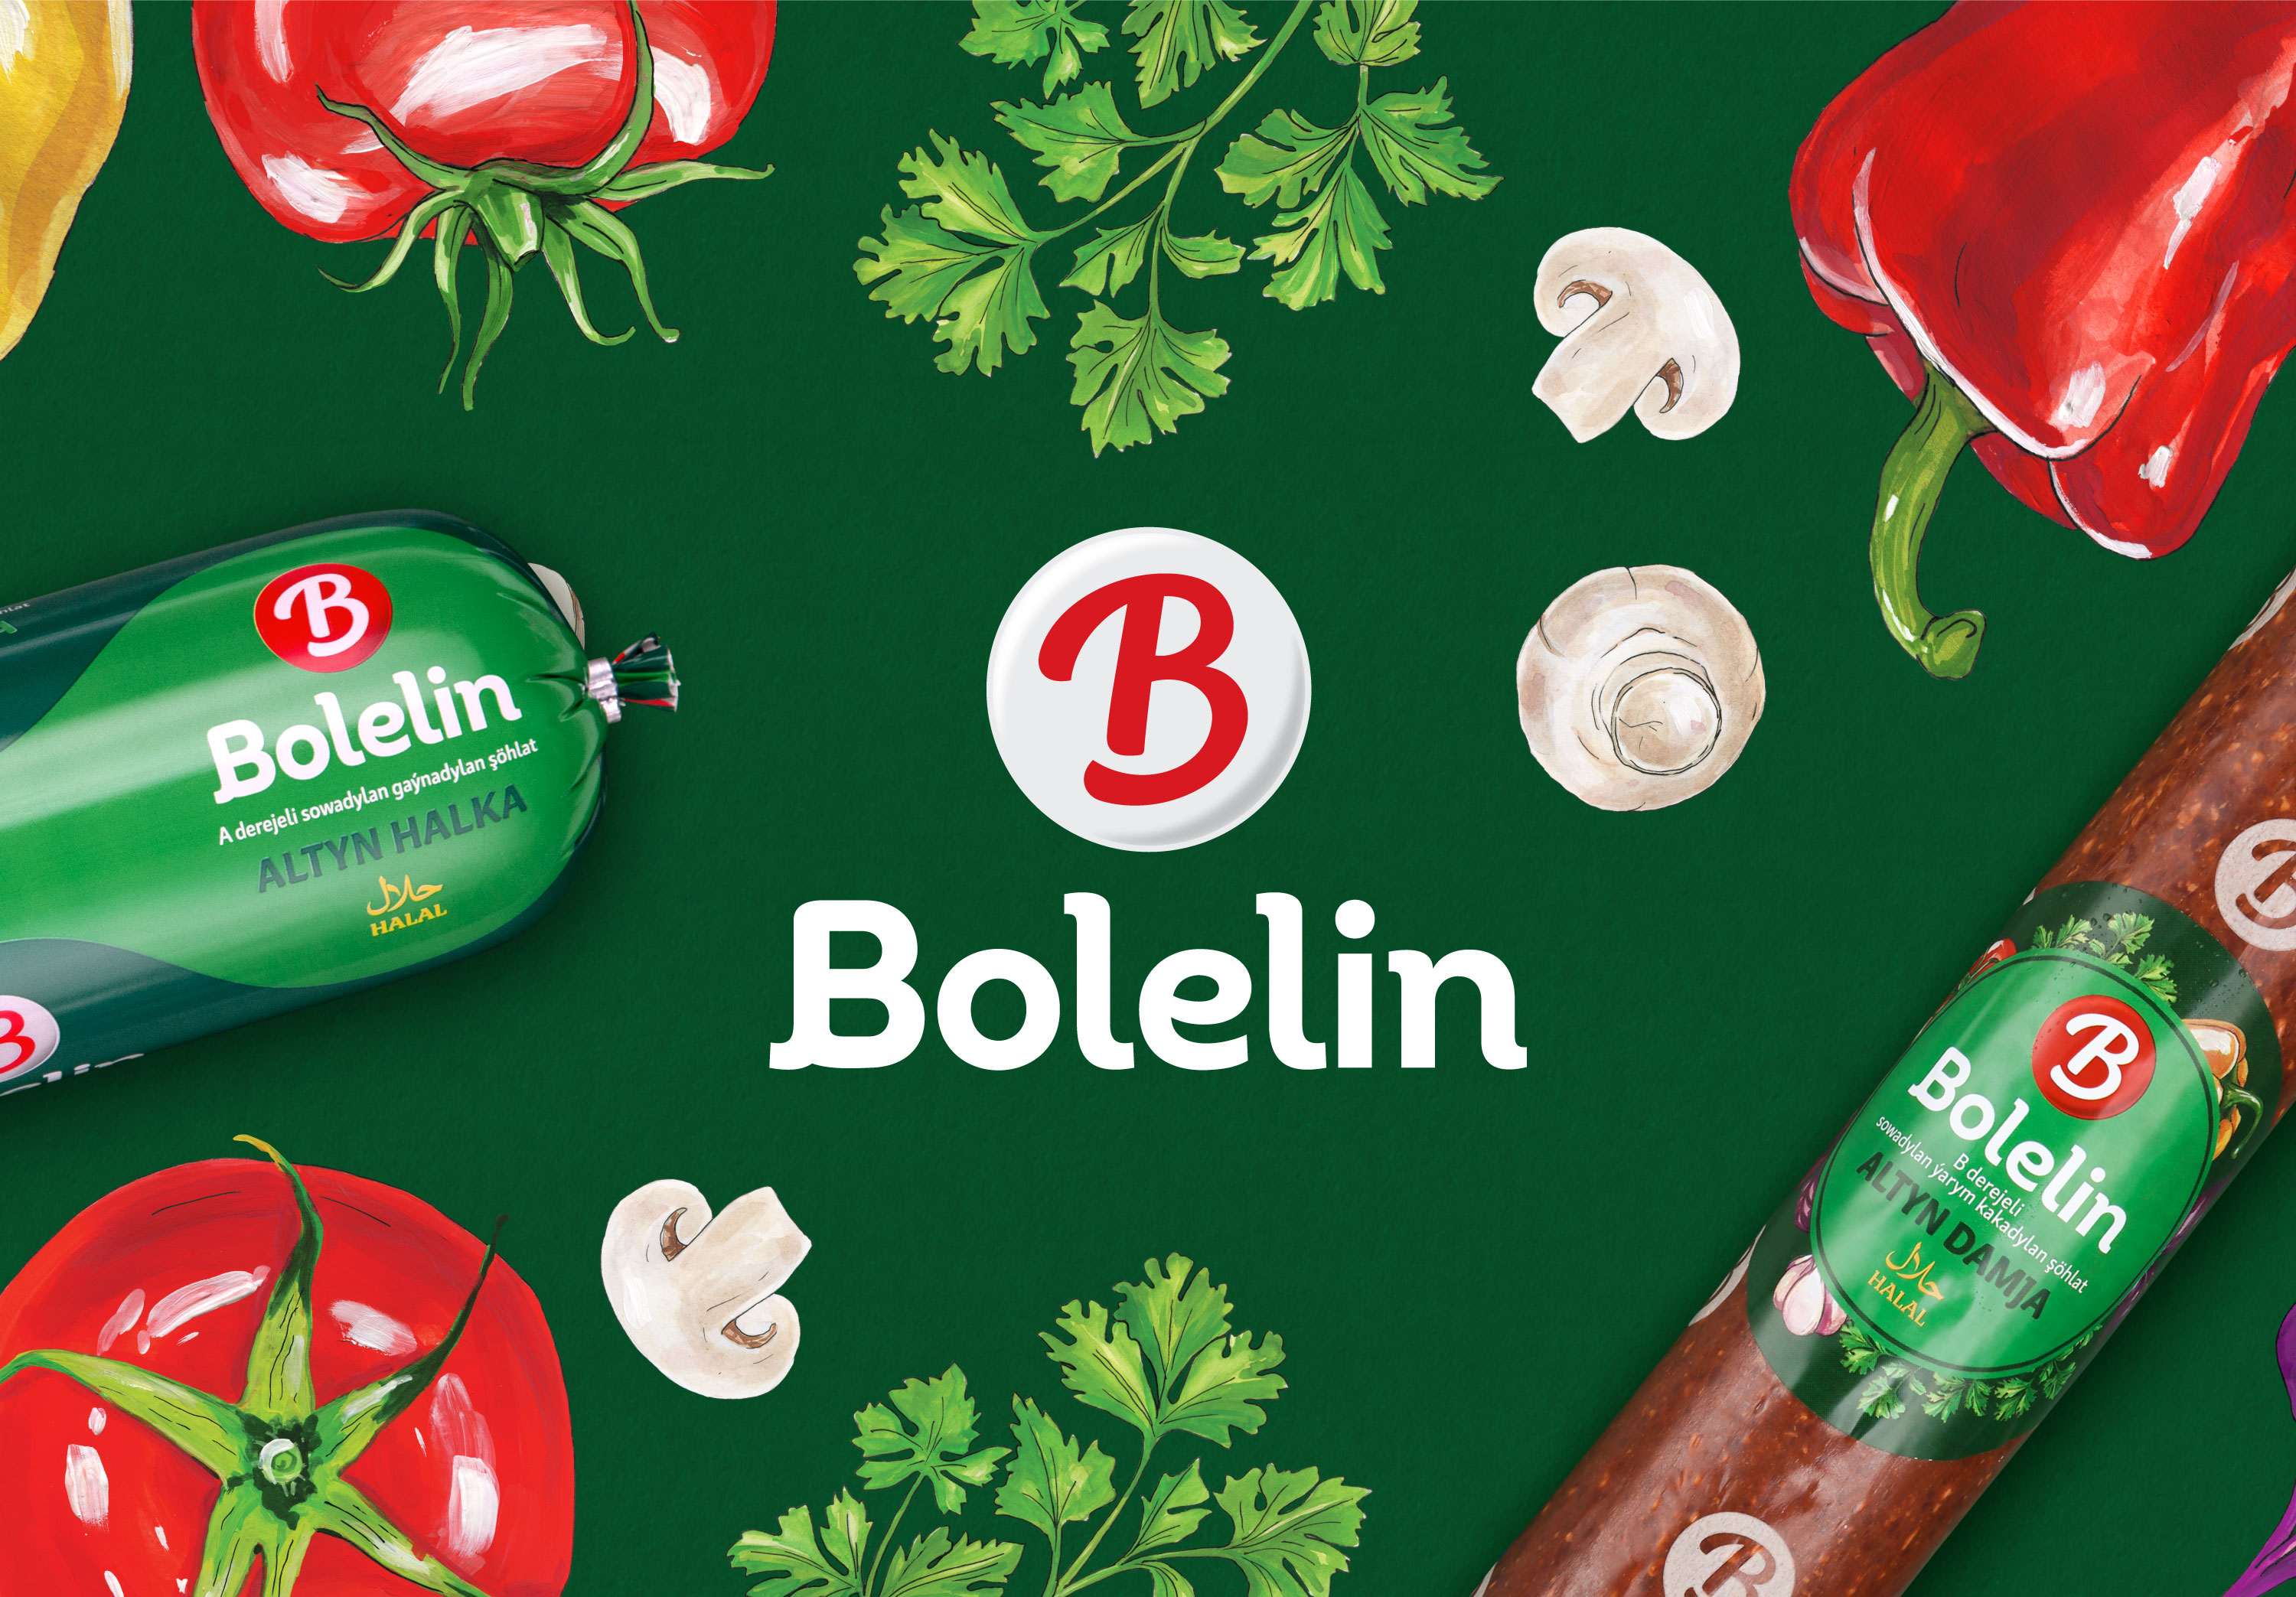 Belli Creative Studio Created the Package Design for Bolelin